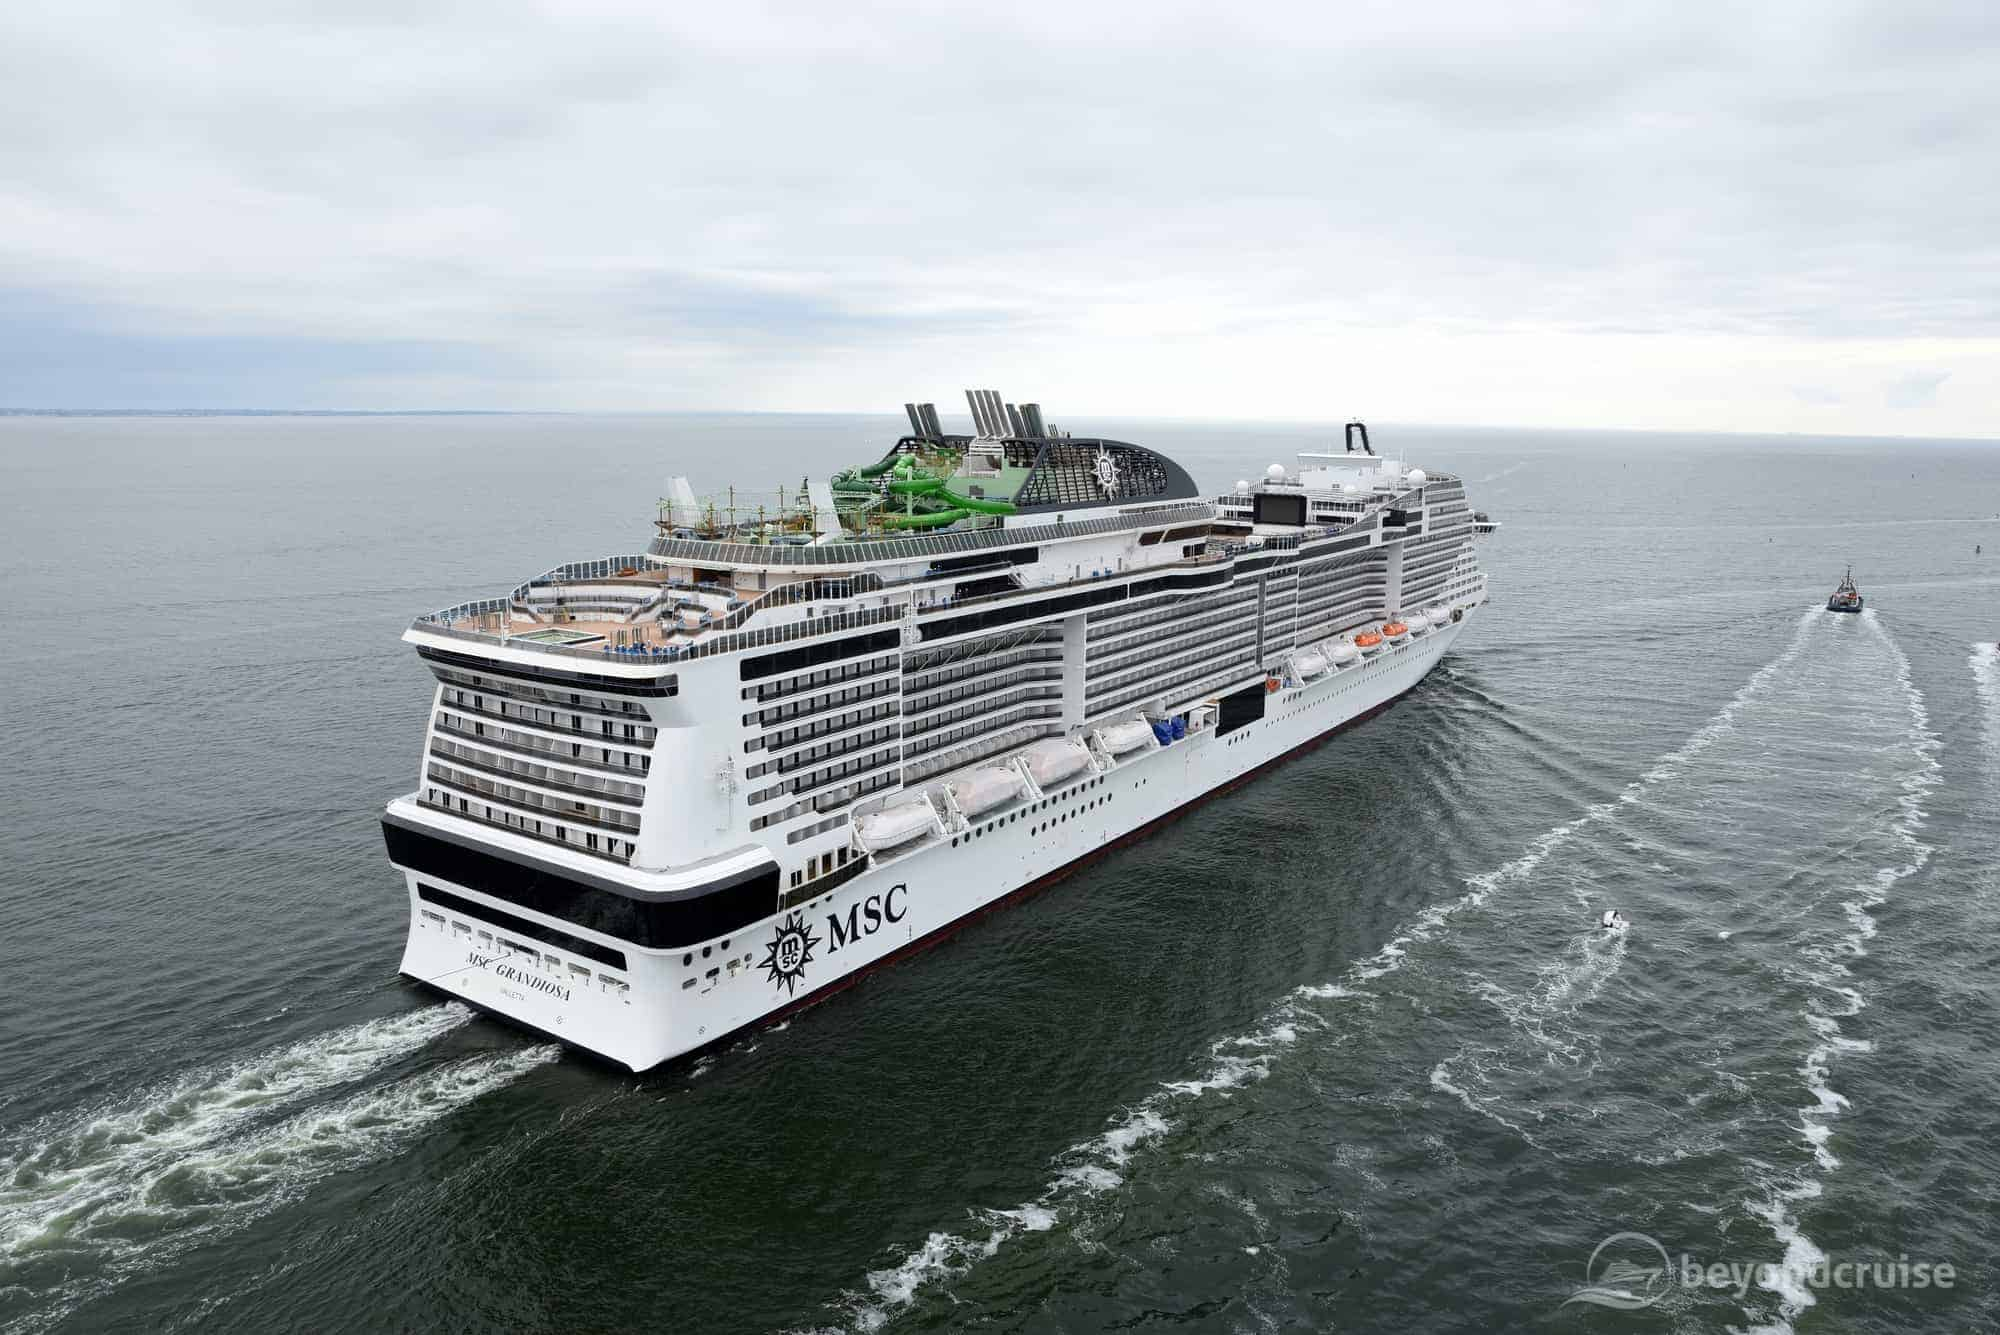 MSC Grandiosa completes sea trials | BeyondCruise